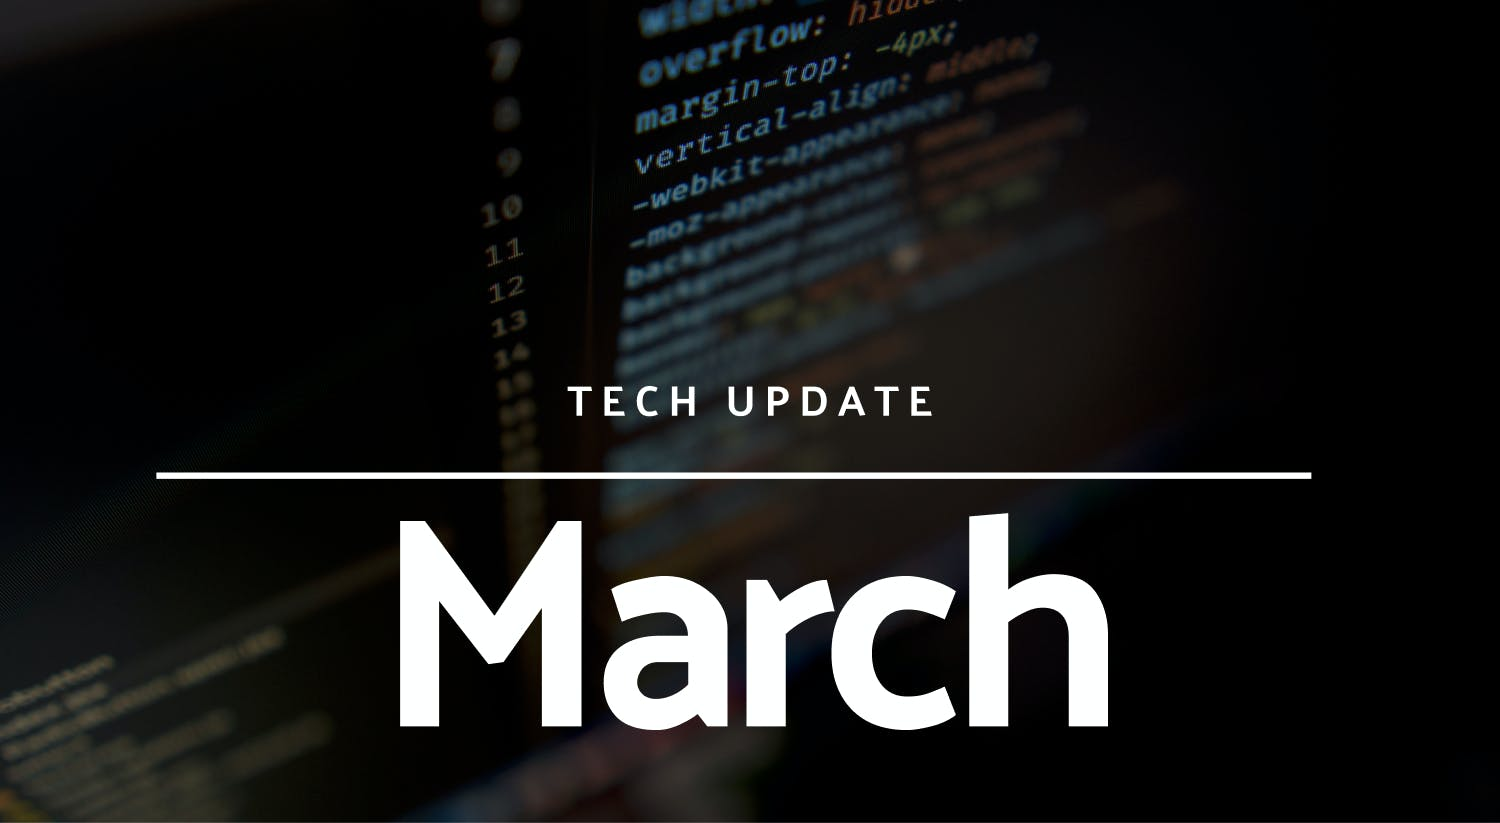 Tech update for March